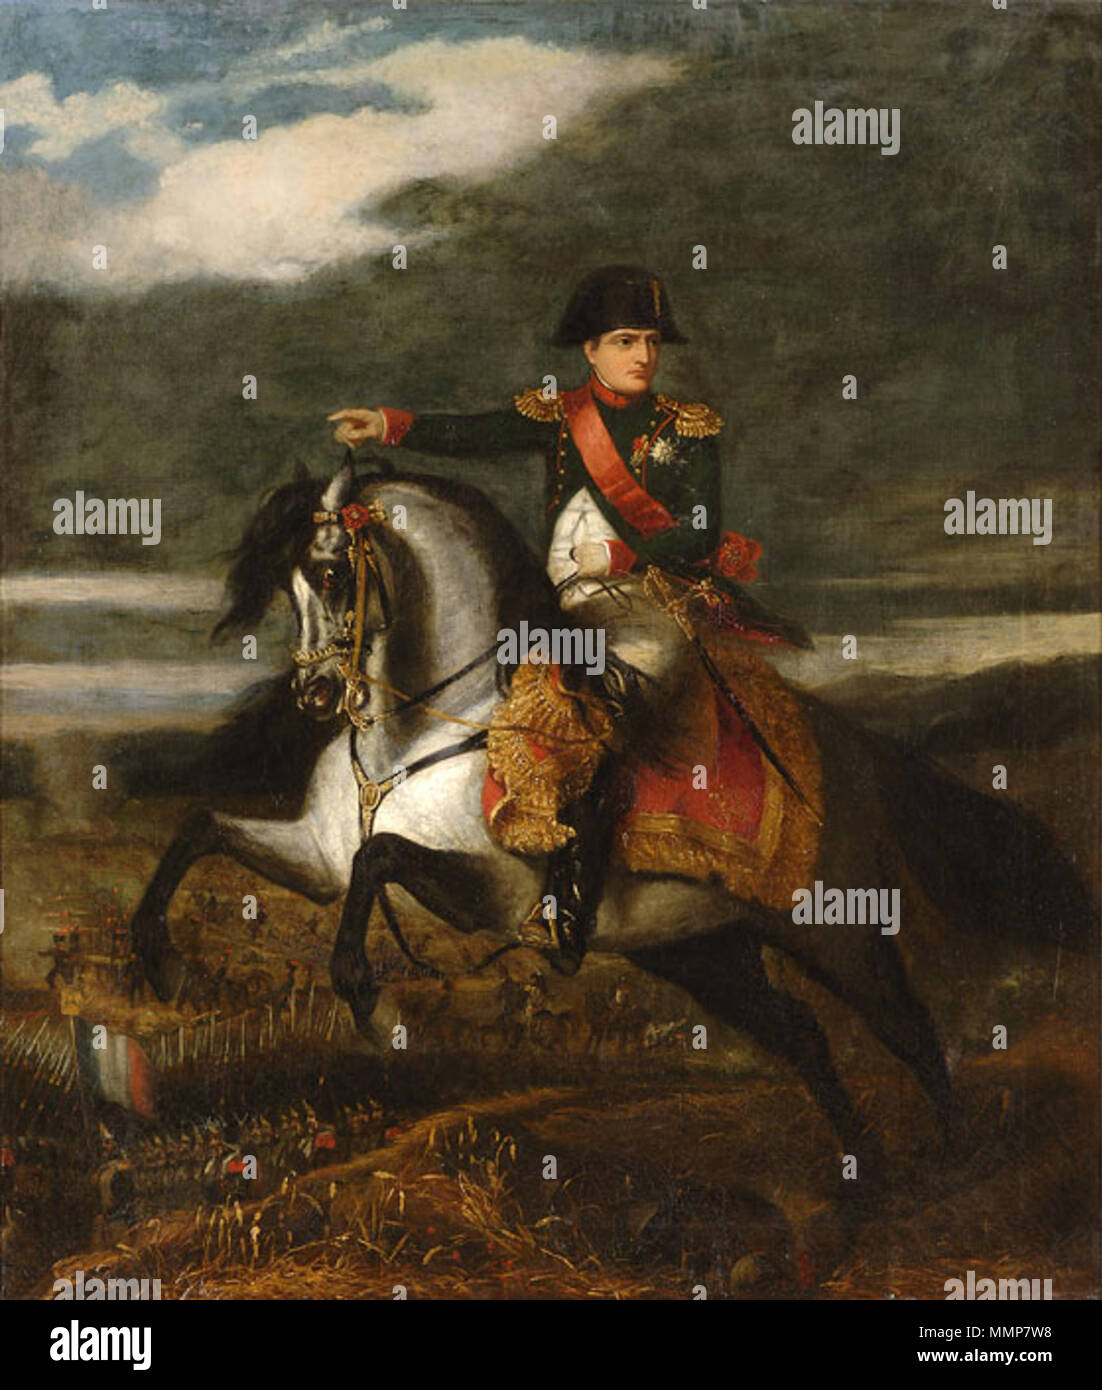 . in the background: Battle of Wagram  Napoleon on horseback. 1843. Alfred d'Orsay Napoleon Wagram 1843 - Stock Image